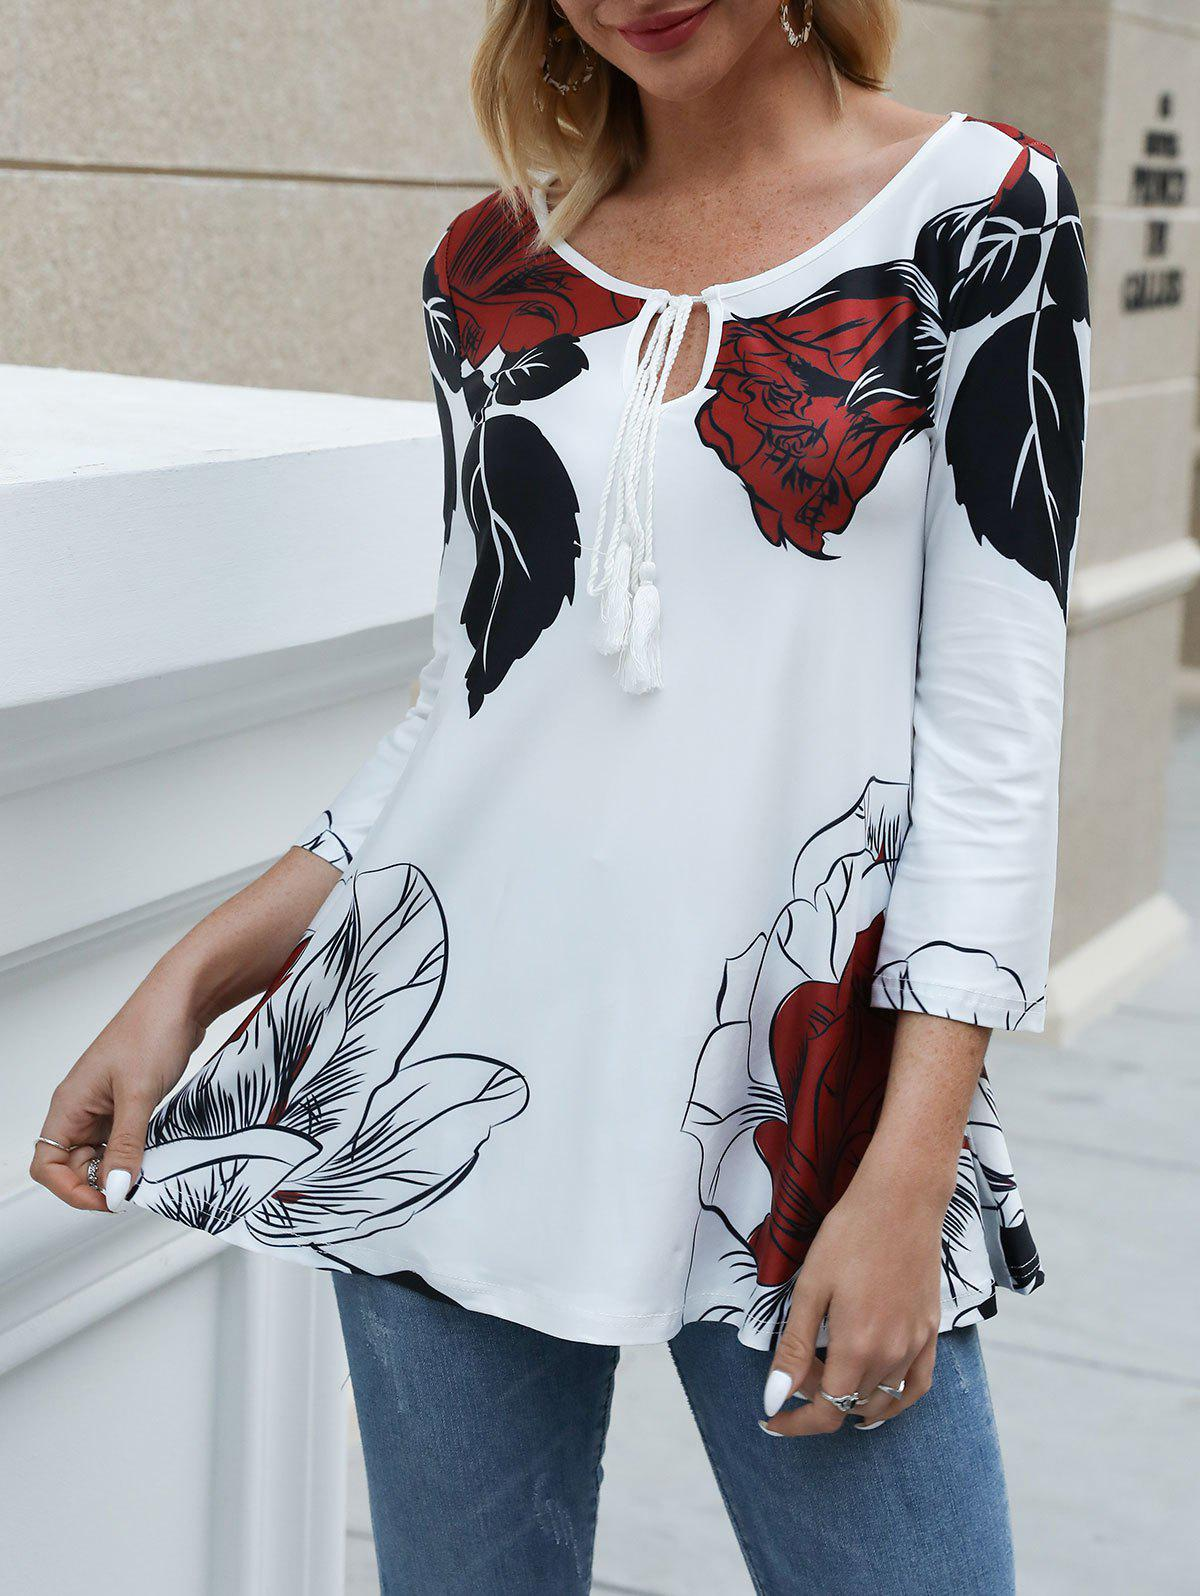 Flower Leaves Print Keyhole Neck Tasseled T-shirt DRESSFO